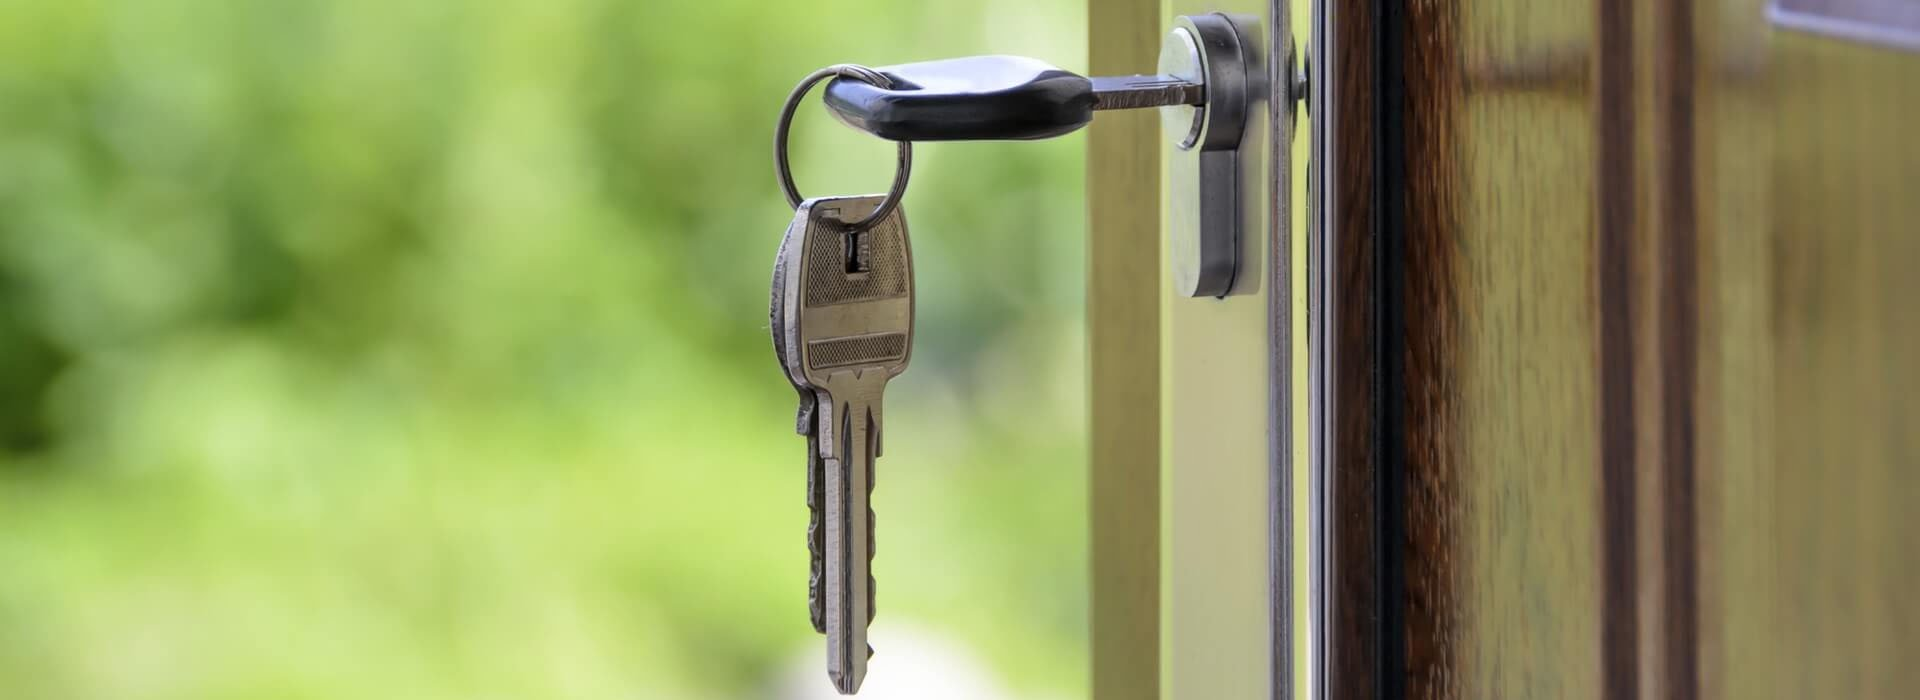 Professional locksmith Bethesda